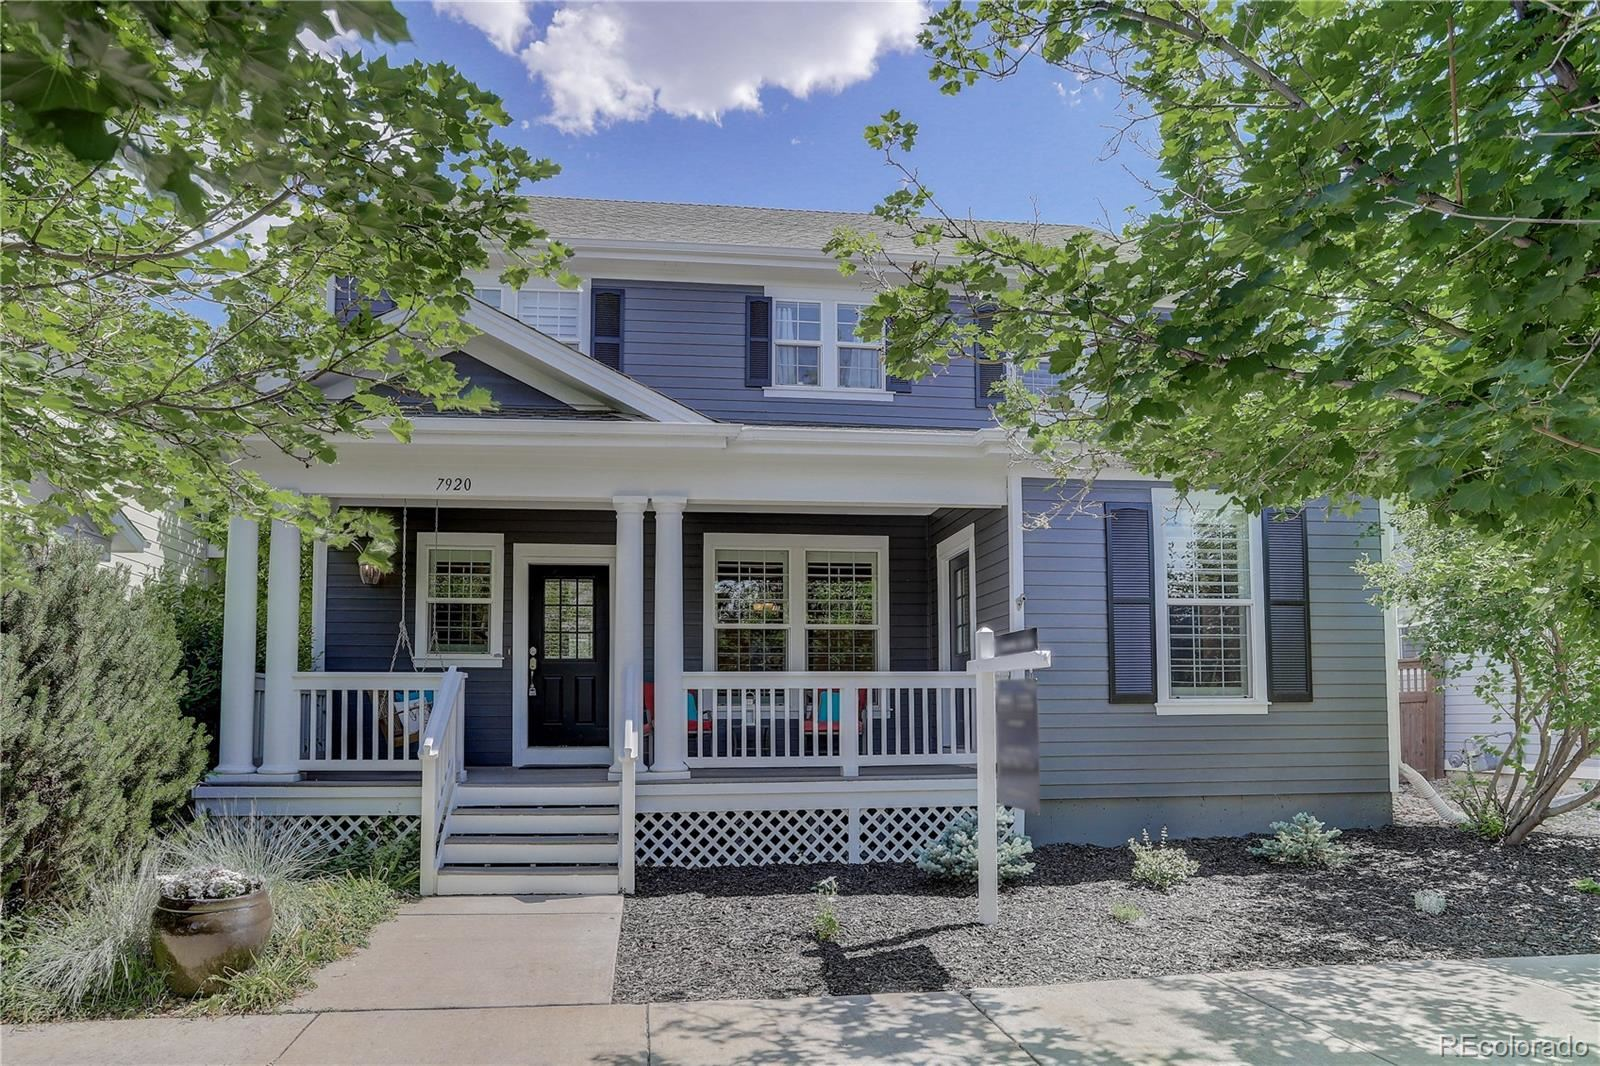 7920 E 26th Avenue, Denver, CO 80238 - #: 5998740